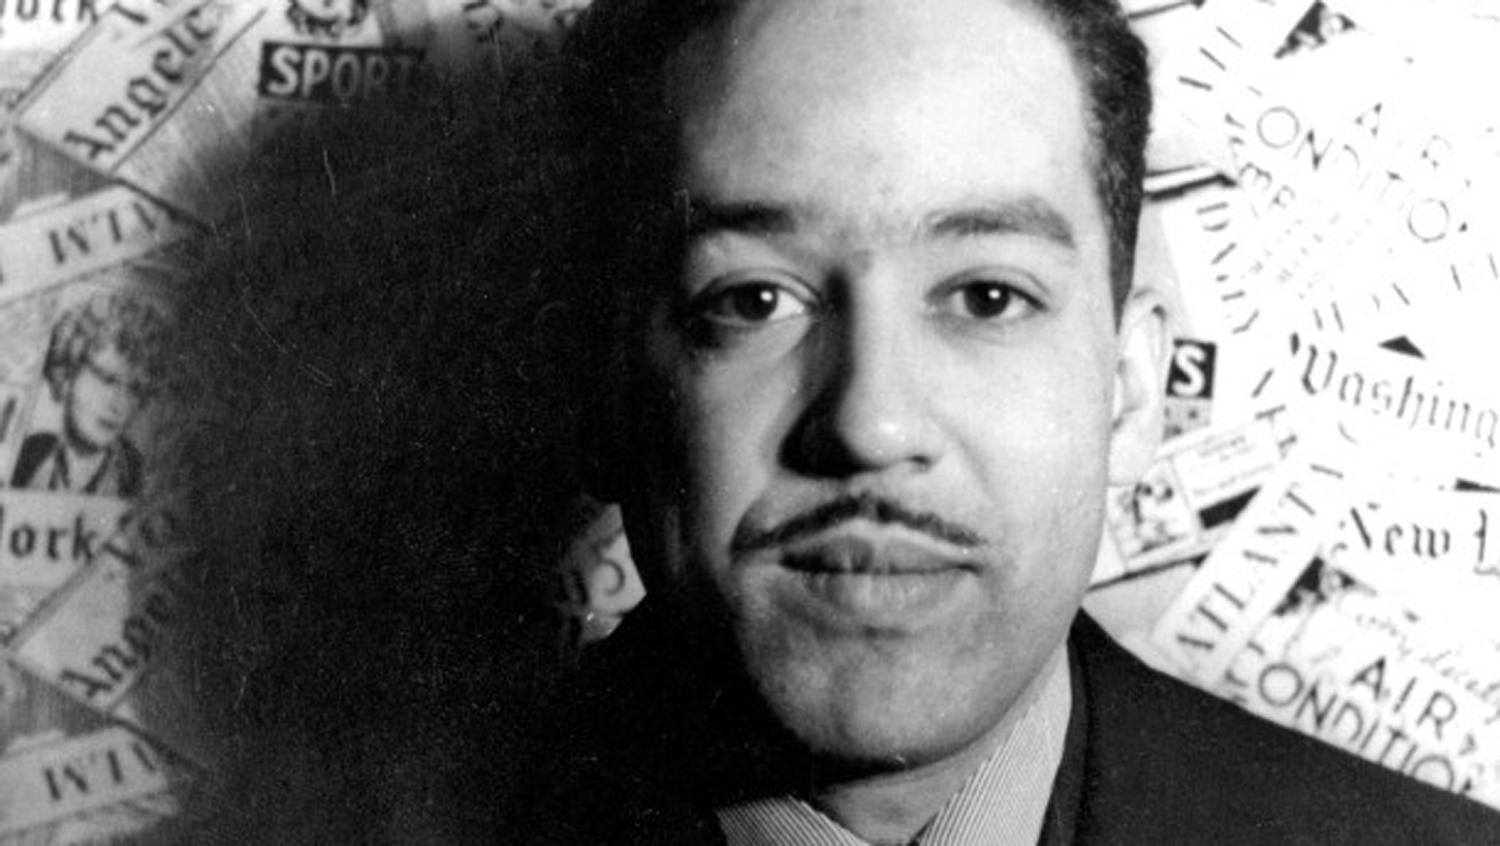 the life and works of langston hughes Langston hughes stands as a literary and cultural langston hughes – the life, times, works as well as the impact of a versatile african-american writer.